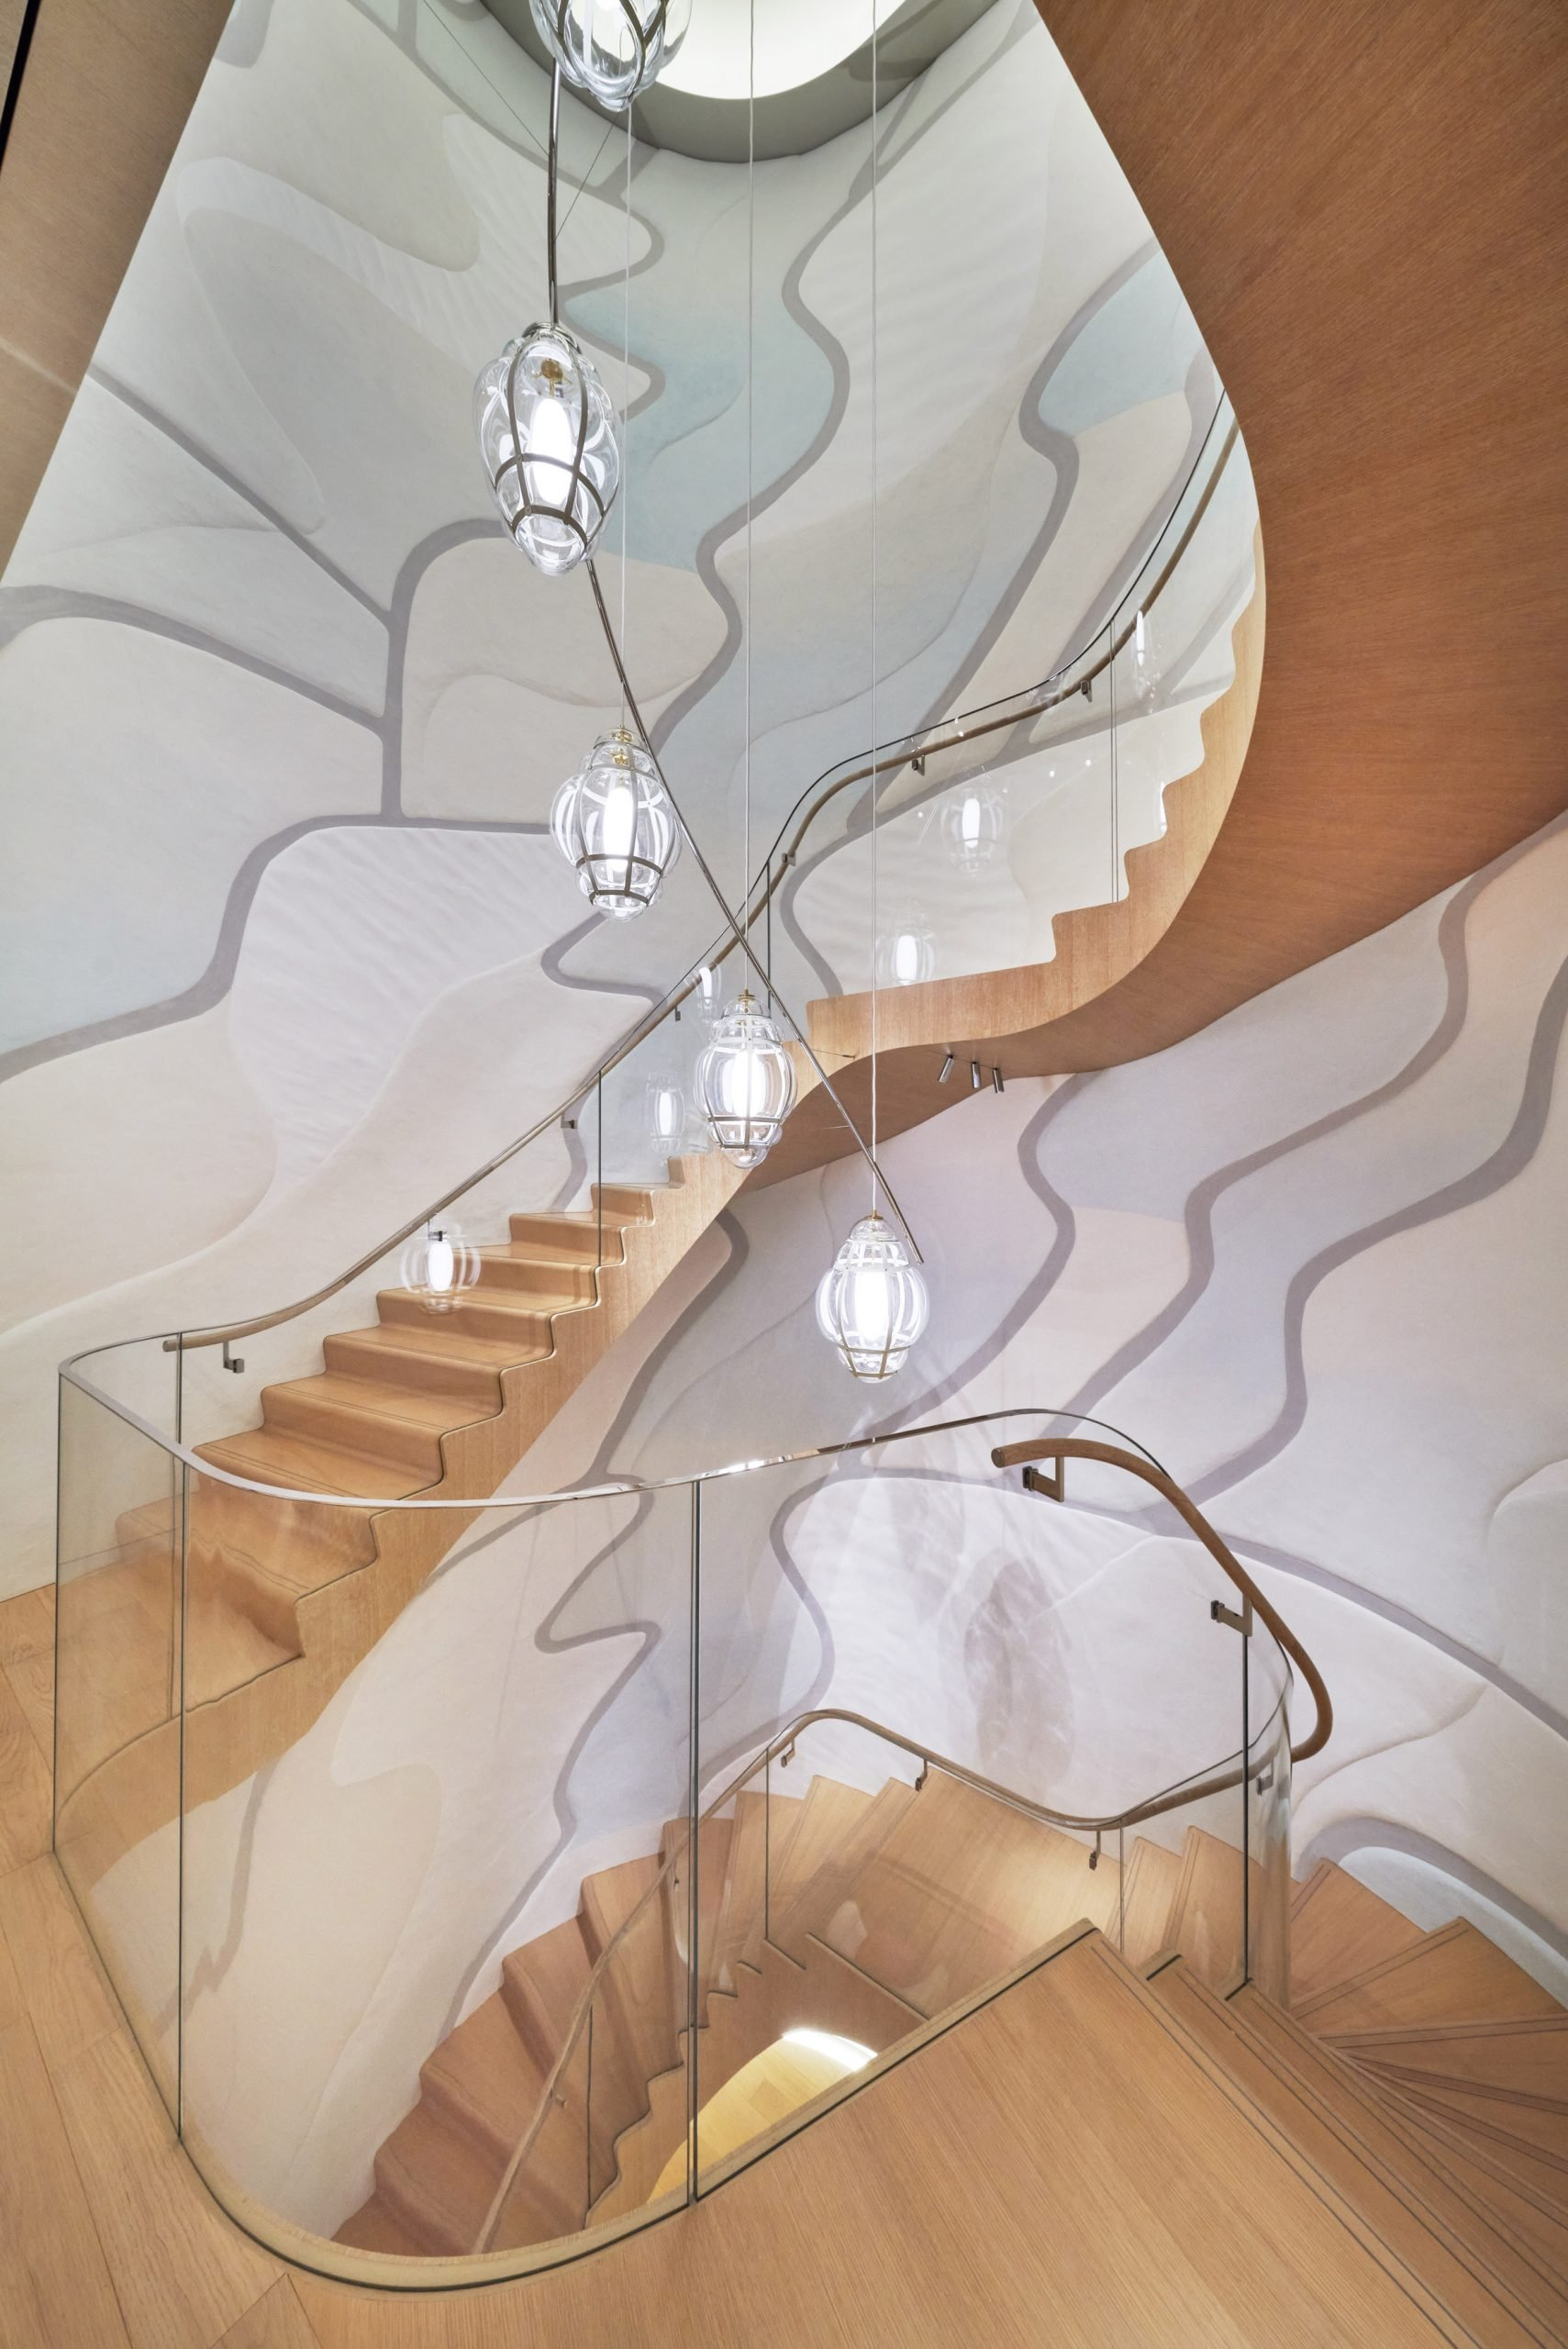 Sculptural glass and oak staircase